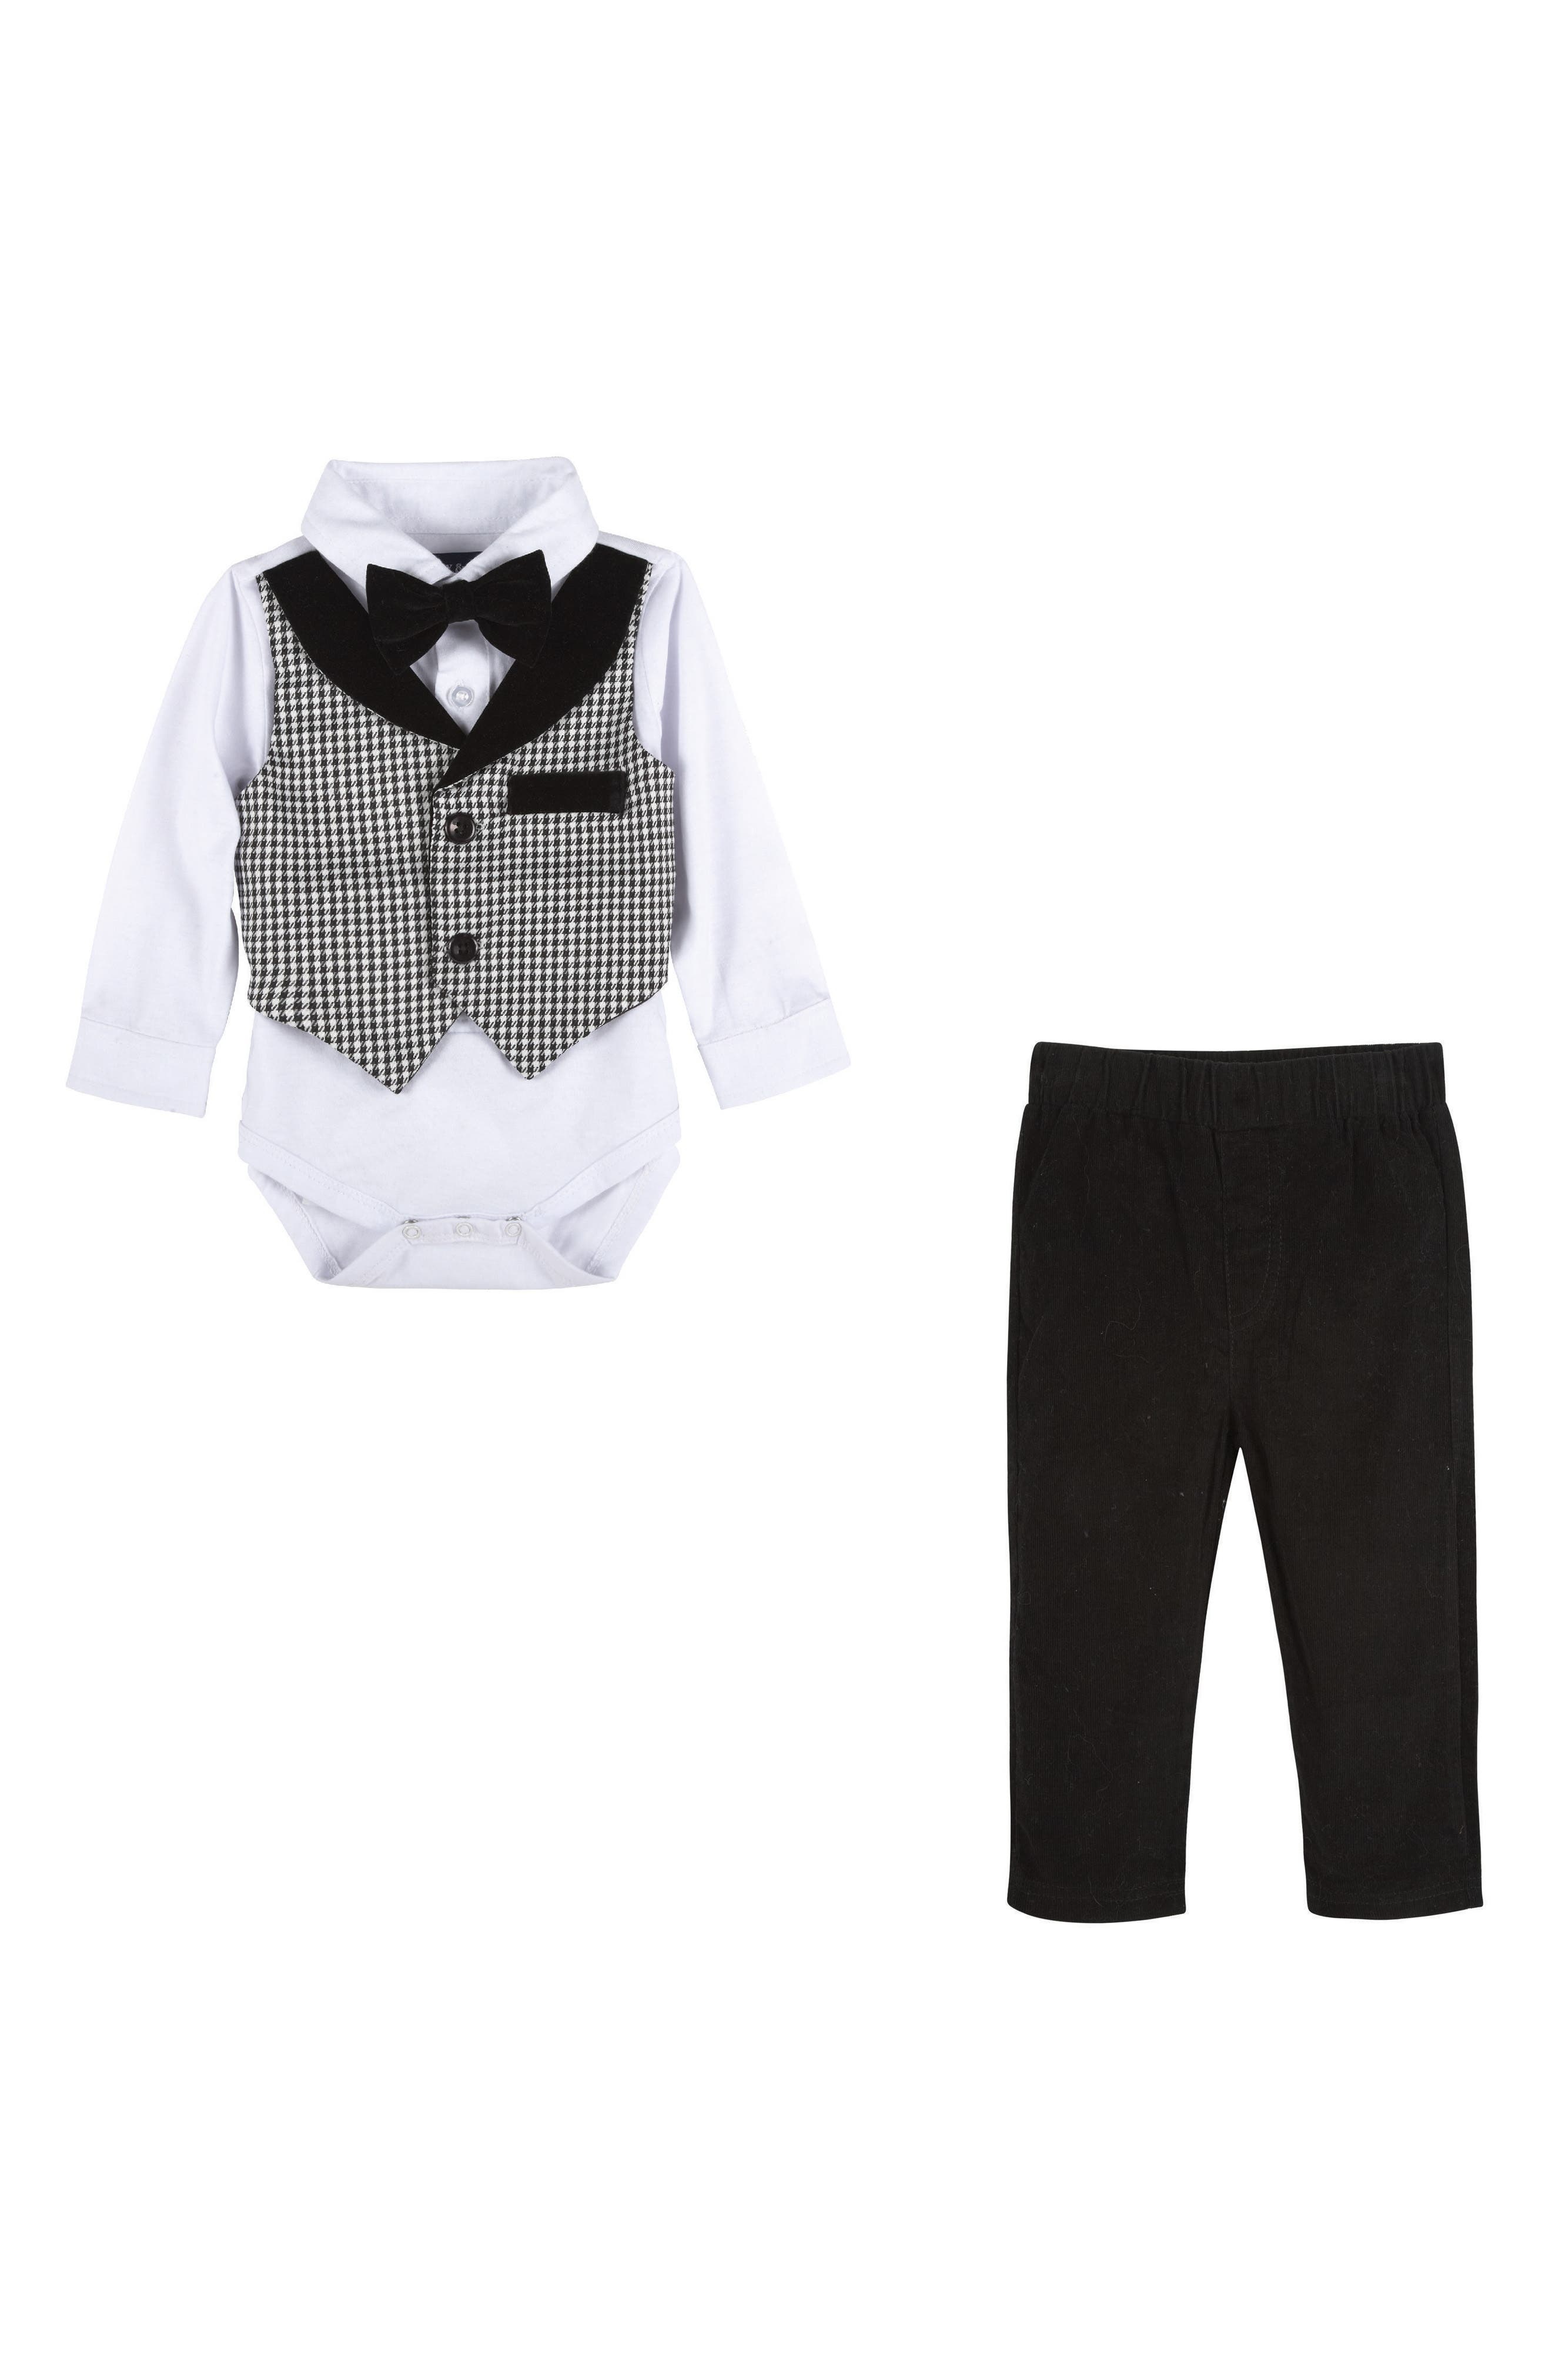 Andy & Evan Pants, Shirt & Bow Tie Set (Baby Boys)